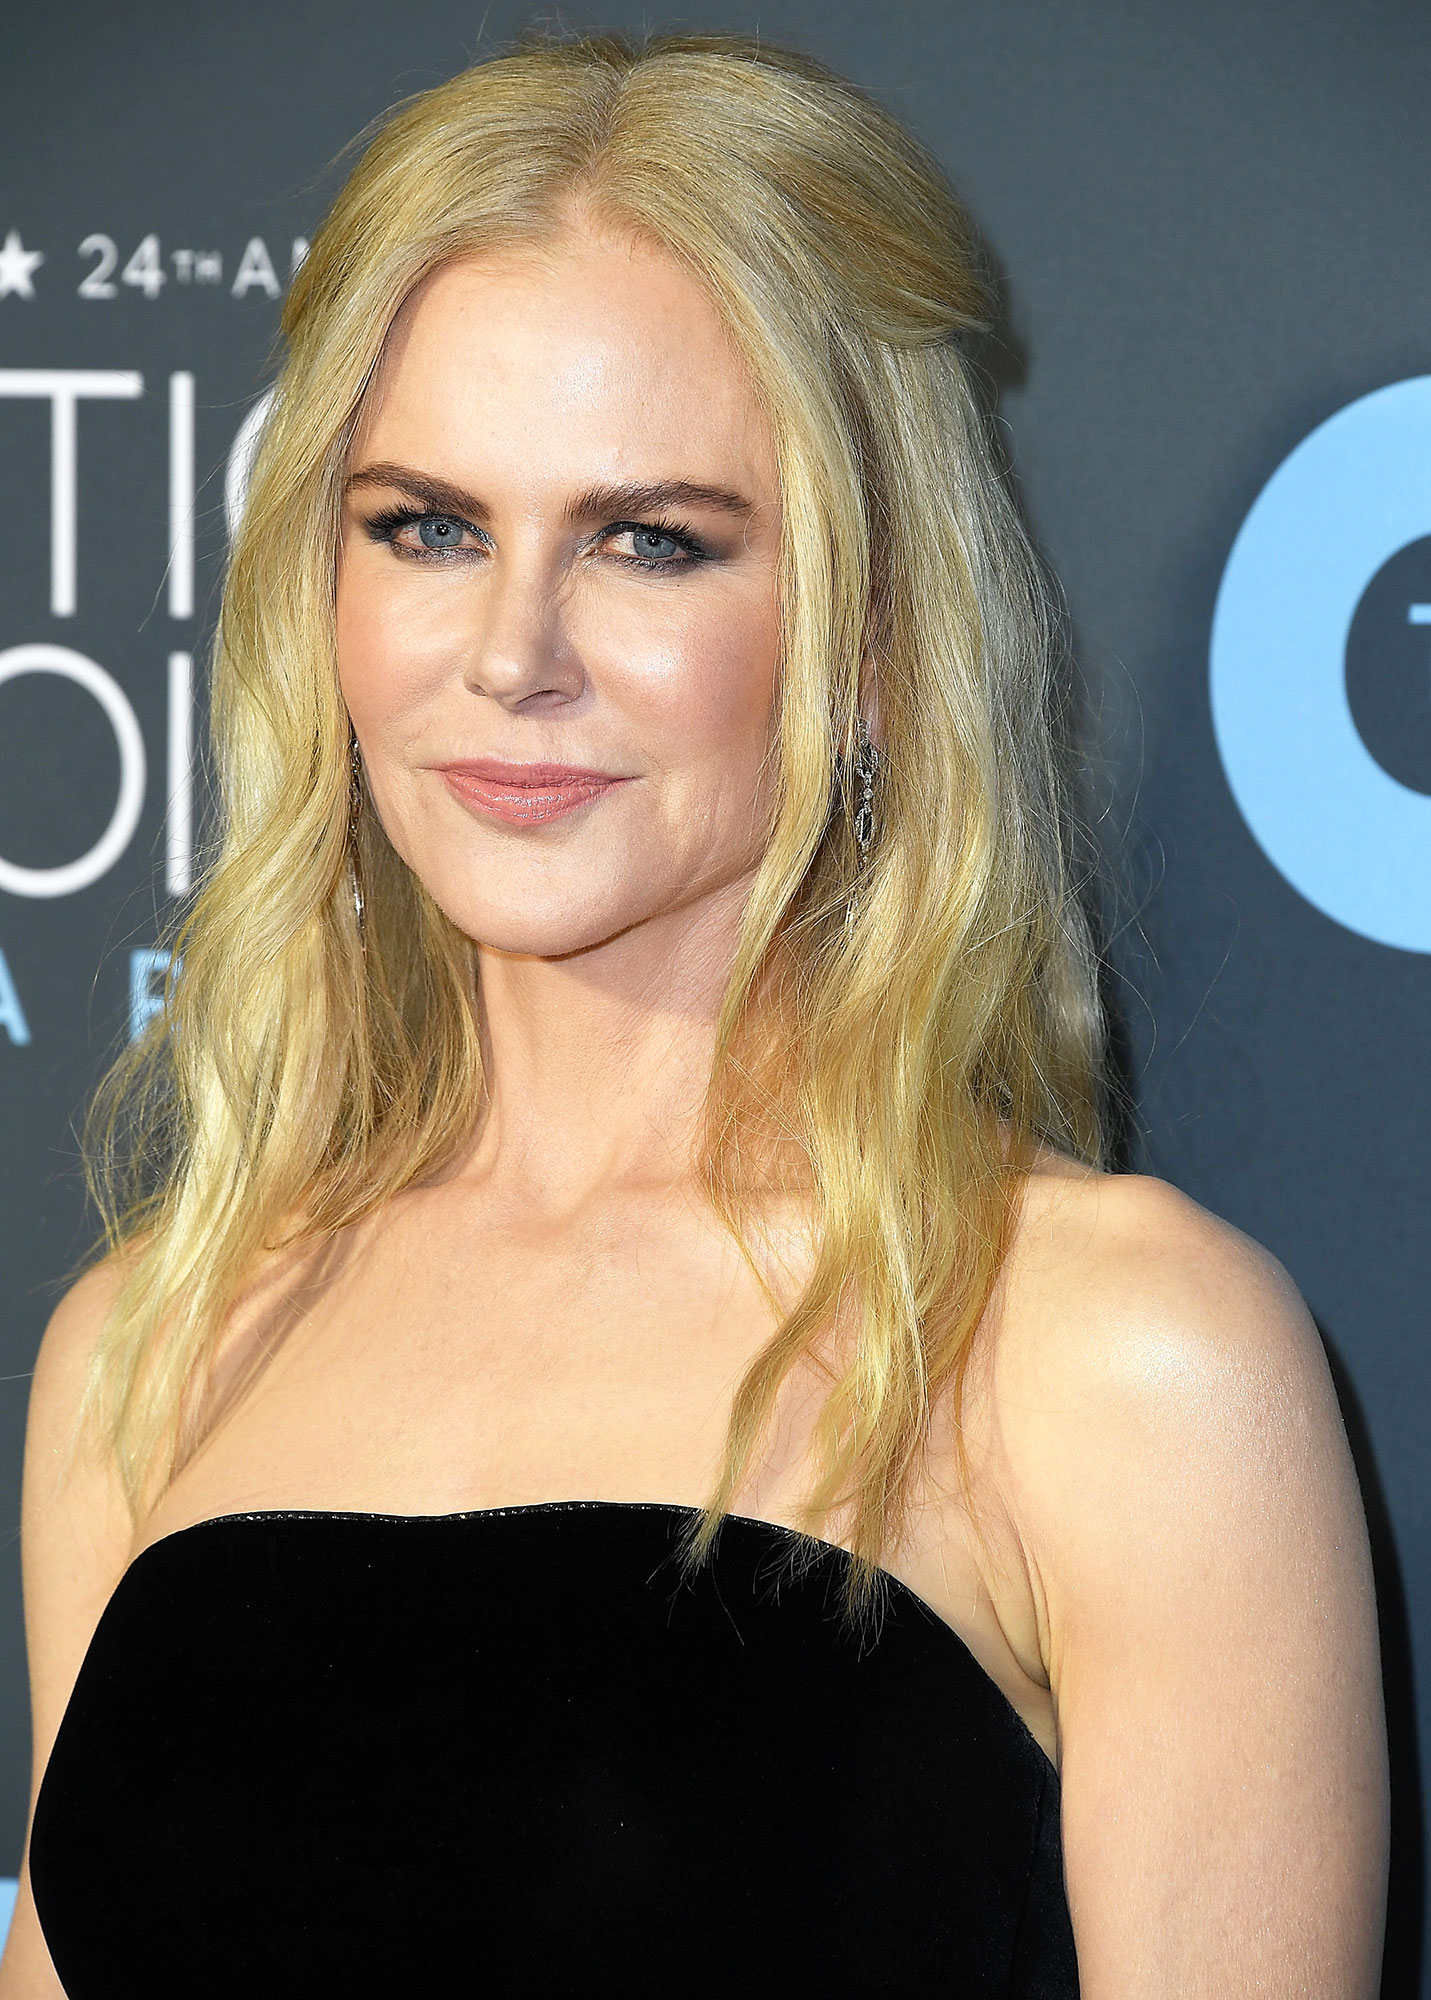 Nicole Kidman - For a romantic take on the classic half-up, half-down style, hairstylist Kylee Heath left a few face-framing tendrils out of the actress' Critics' Choice Awards 'do. On Instagram, the pro shared that she used Harry Josh Pro Tools to create the loose waves and finished things off with Oribe styling products (the Dry Texturizing Spray is a forever-fave in our book).